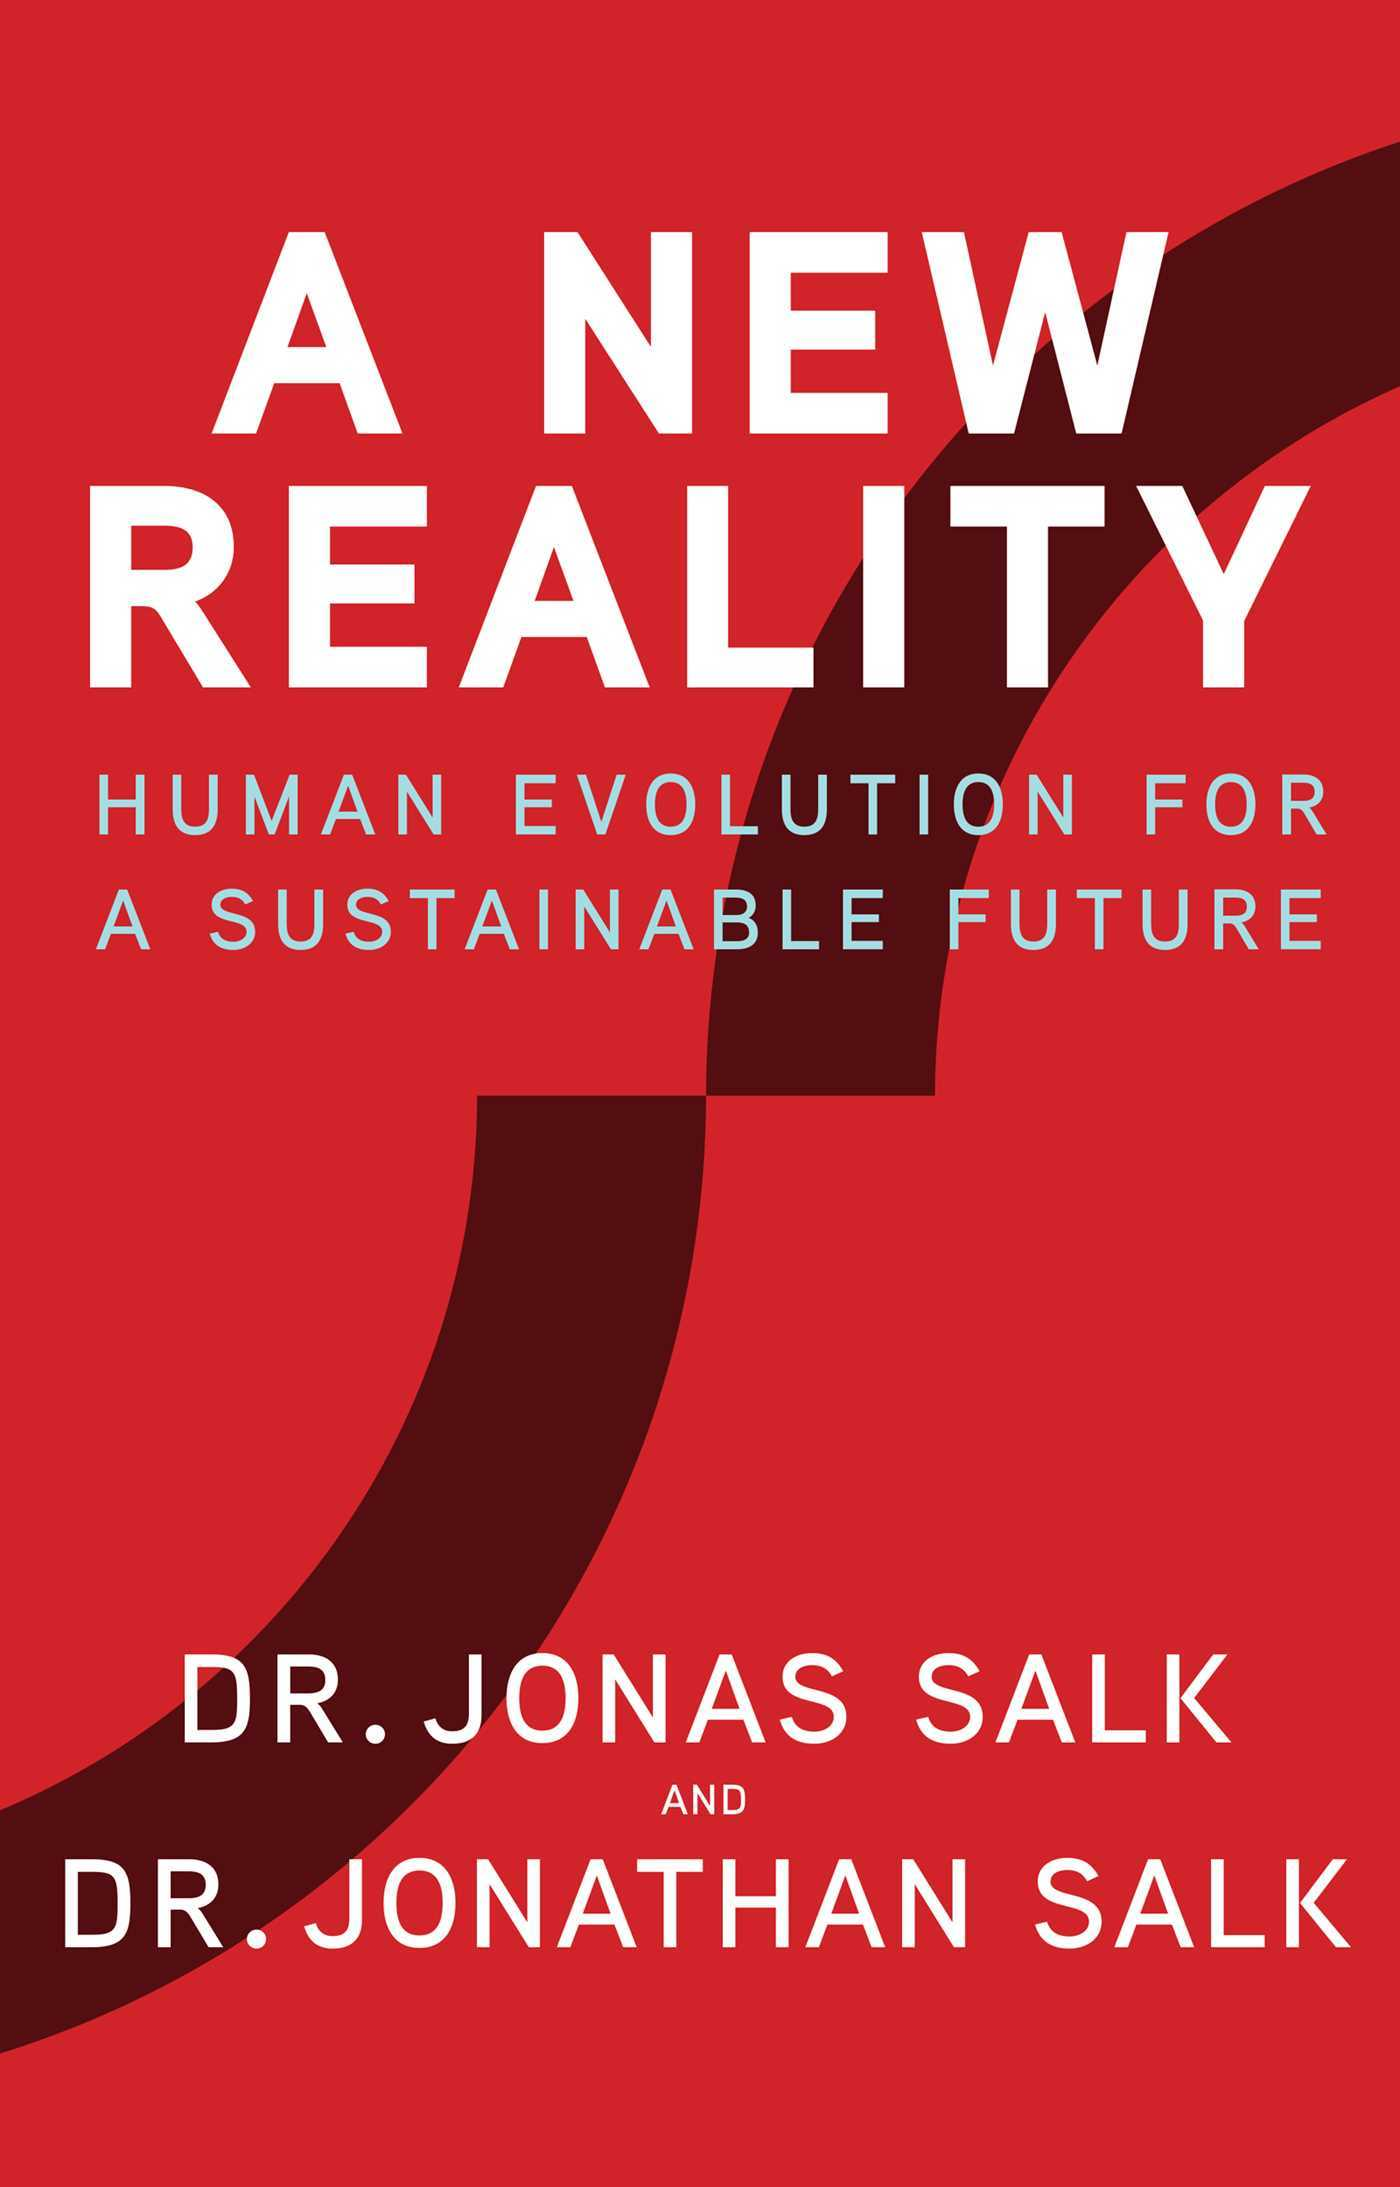 A New Reality Human Evolution for a Sustainable Future